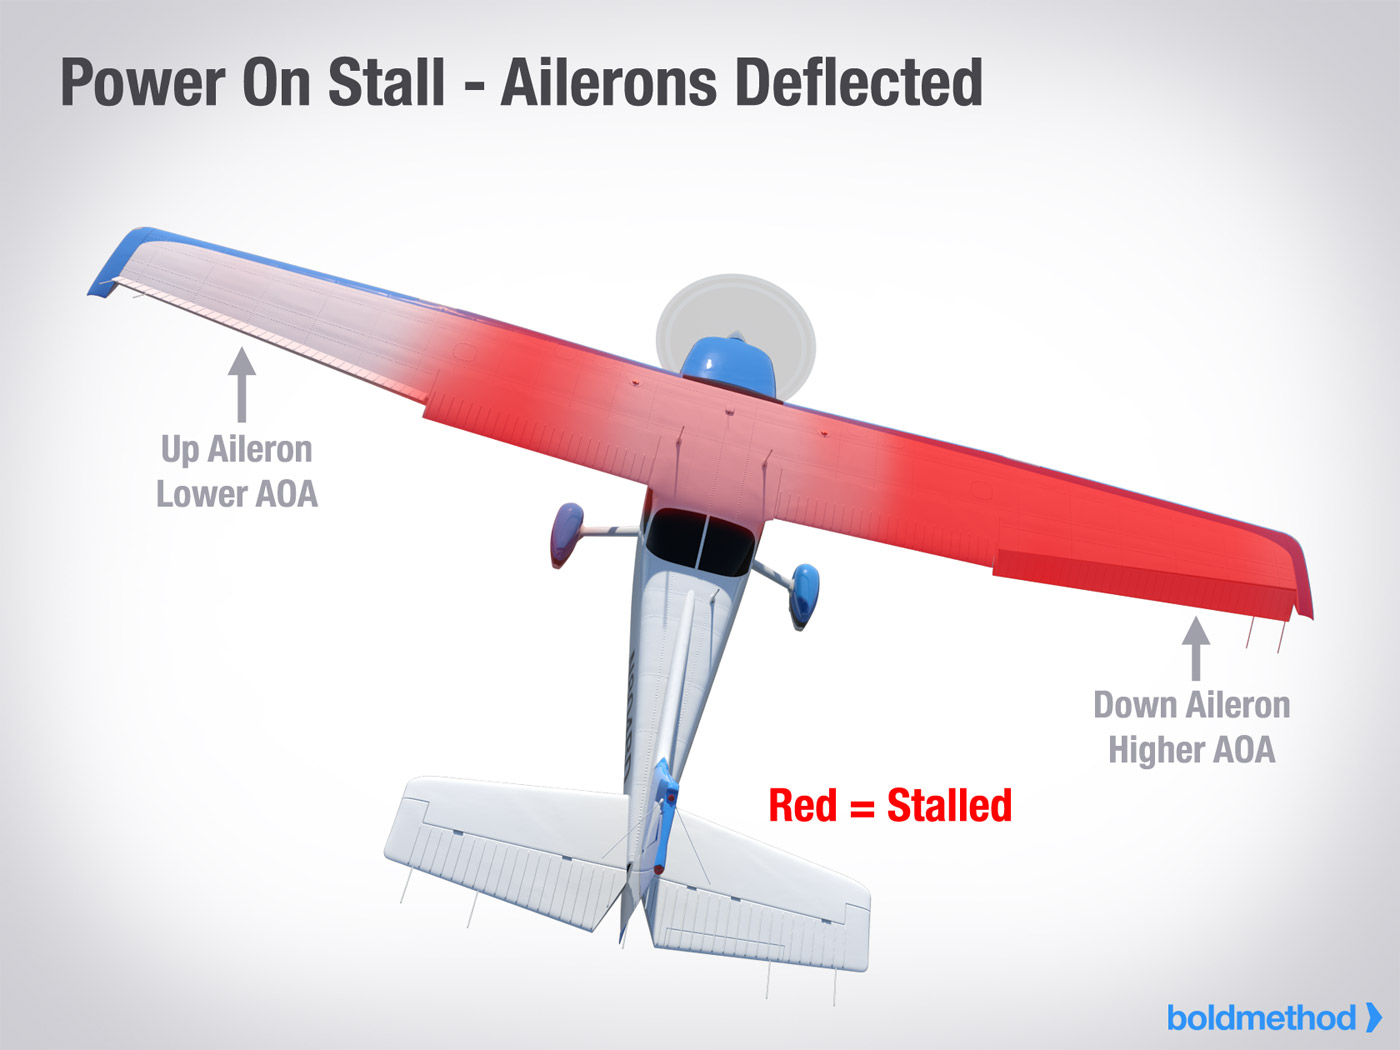 Power-On Stall - Ailerons Deflected